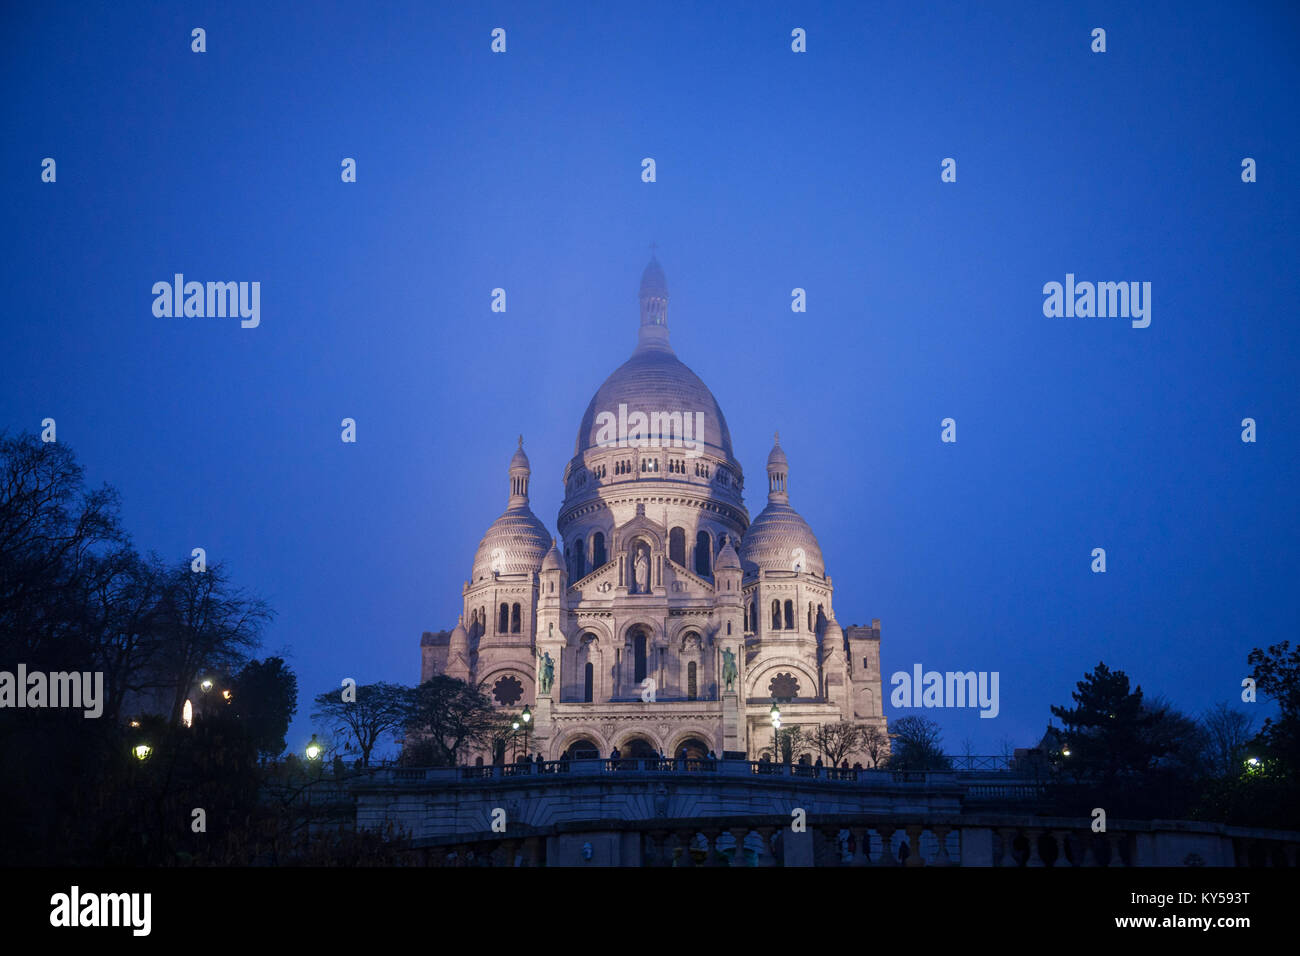 Sacre Coeur Basilica in Montmartre, Paris, illuminated during a winter night. The Basilica of the Sacred Heart of - Stock Image